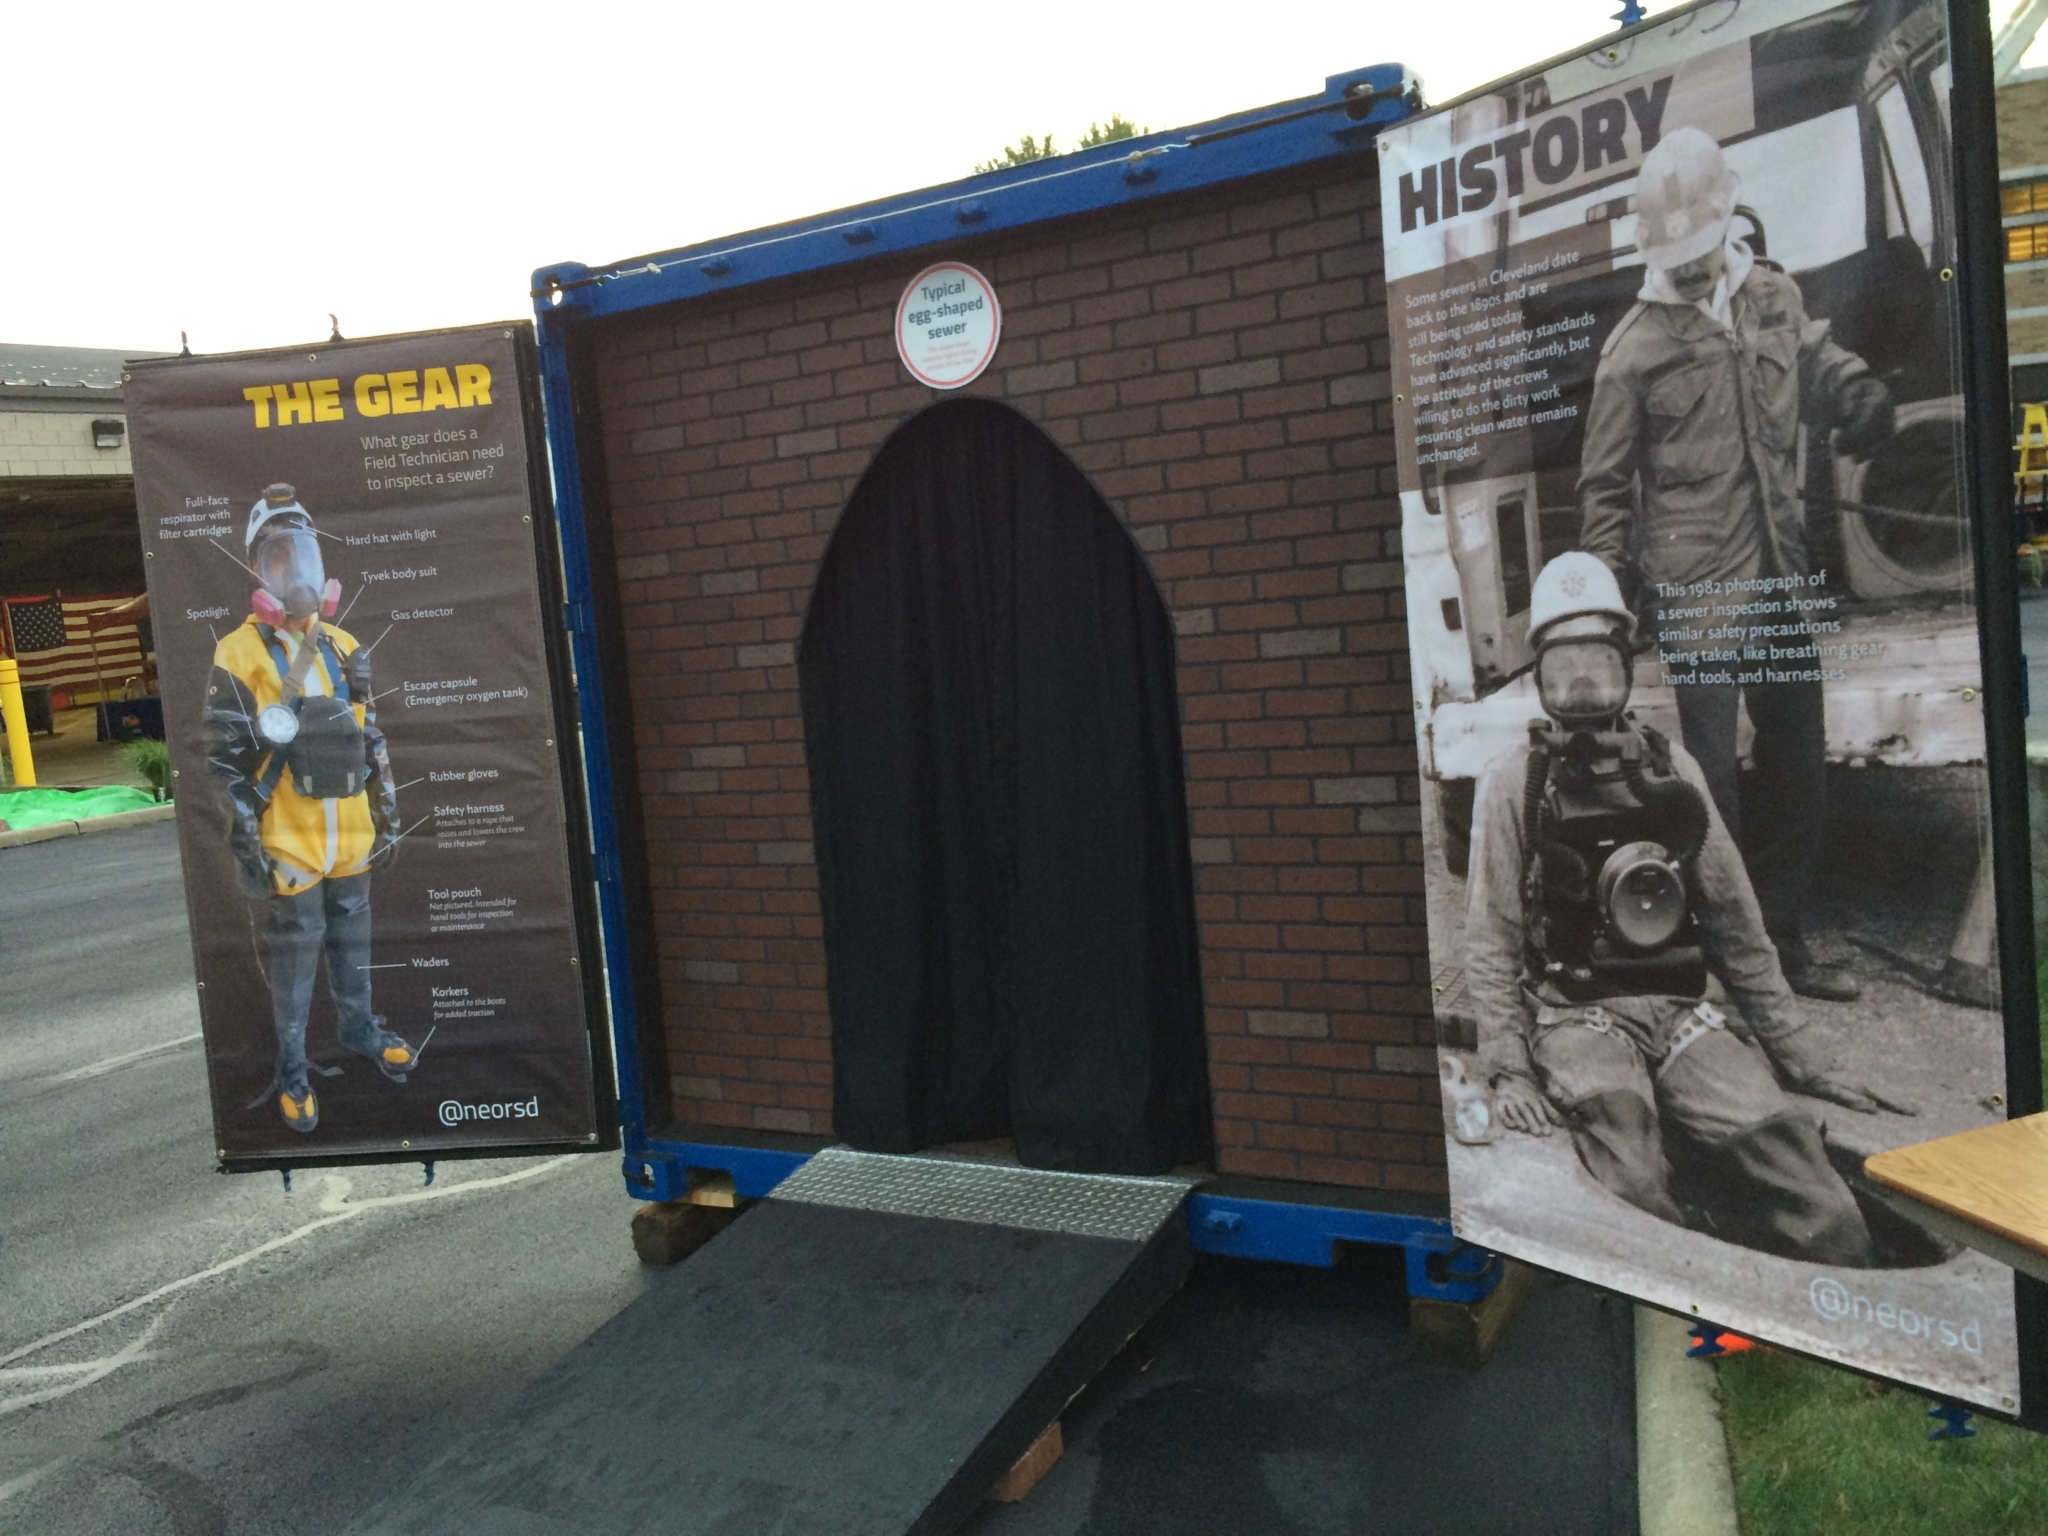 The doorway to the simulator is designed to look like the city's oldest sewer lines, and also showcases the gear workers need to safely work underground. (Photo courtesy of NEORSD)